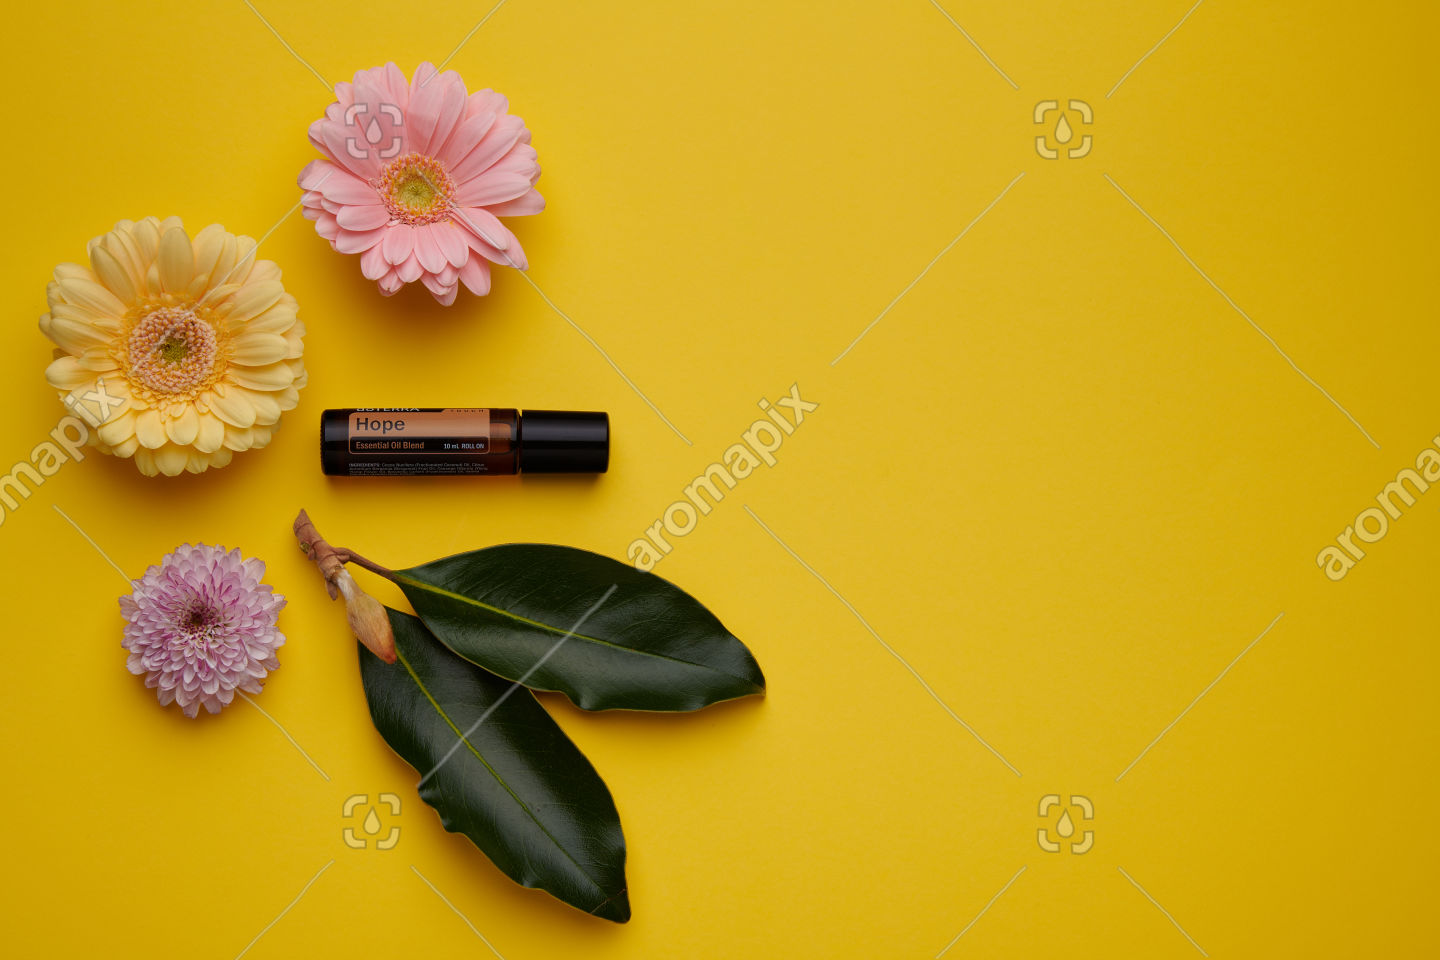 doTERRA Hope Touch with flowers and leaves on yellow